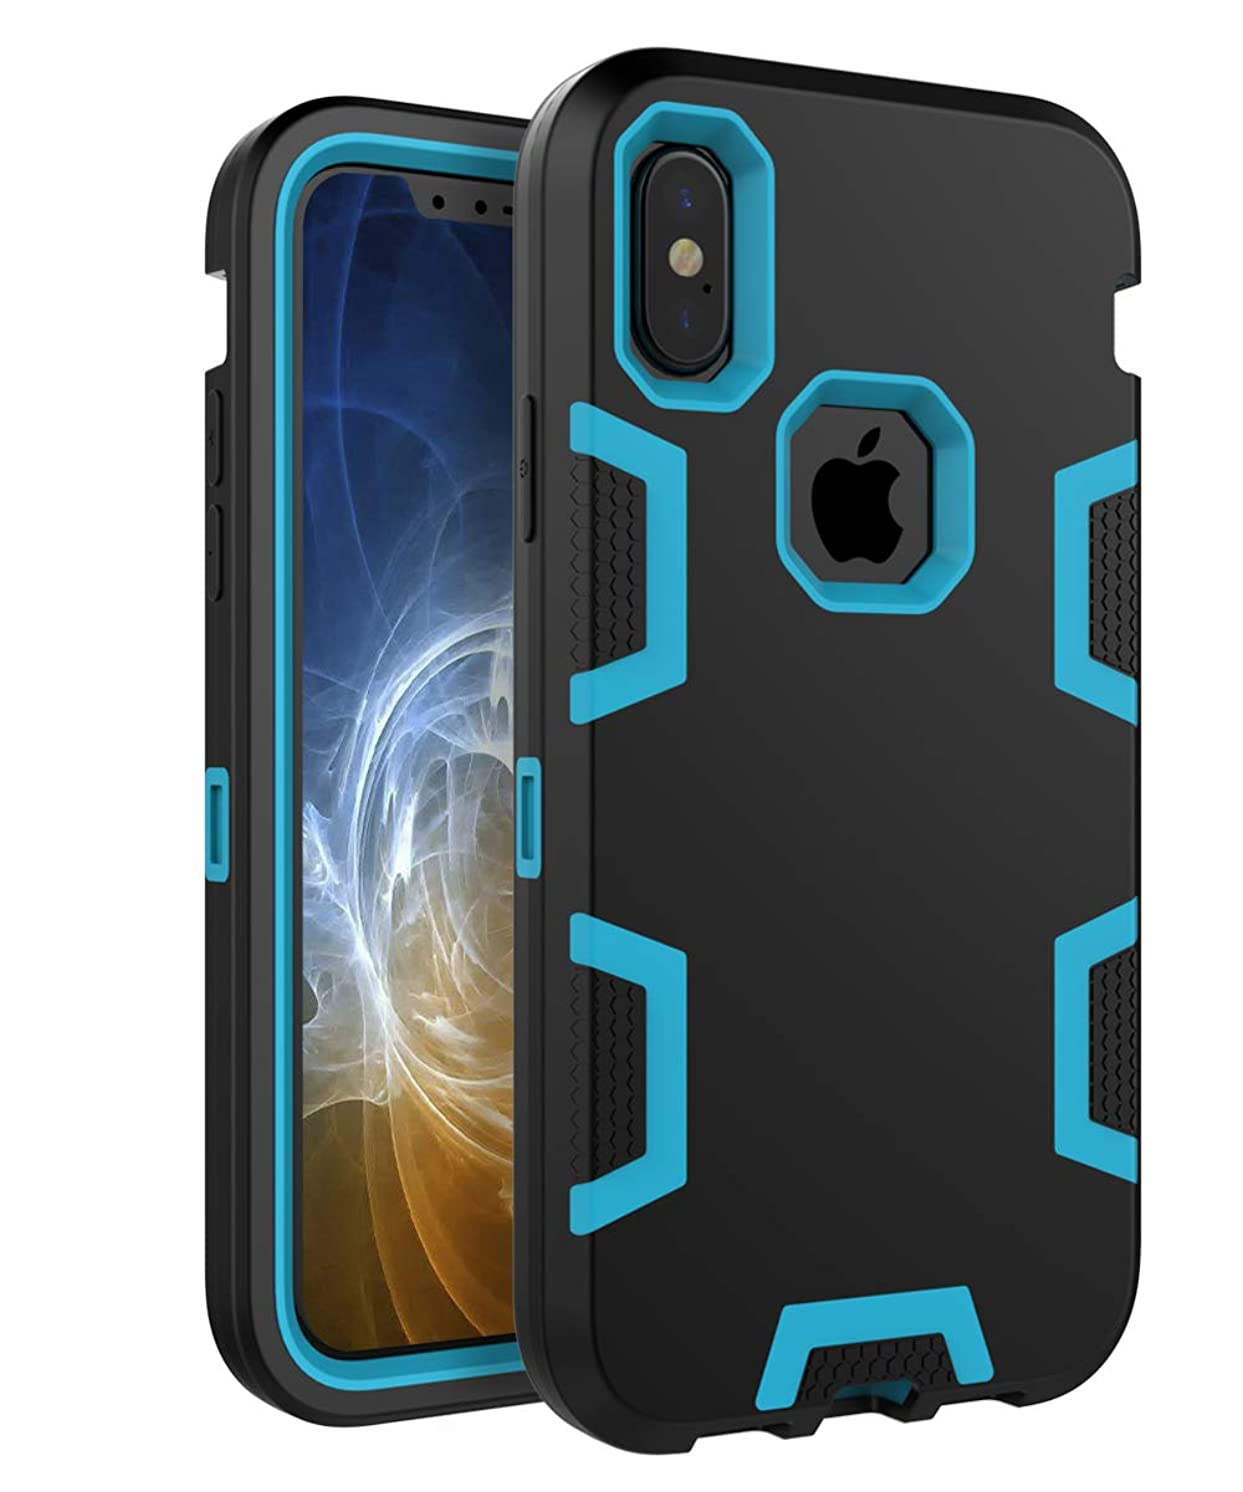 iPhone Xs Case iPhone X case TIANLI Three Layer PC + Silicone Rubber Hybrid Shockproof Protective Cover for iPhone Xs 2018/X 2017 - Black Blue